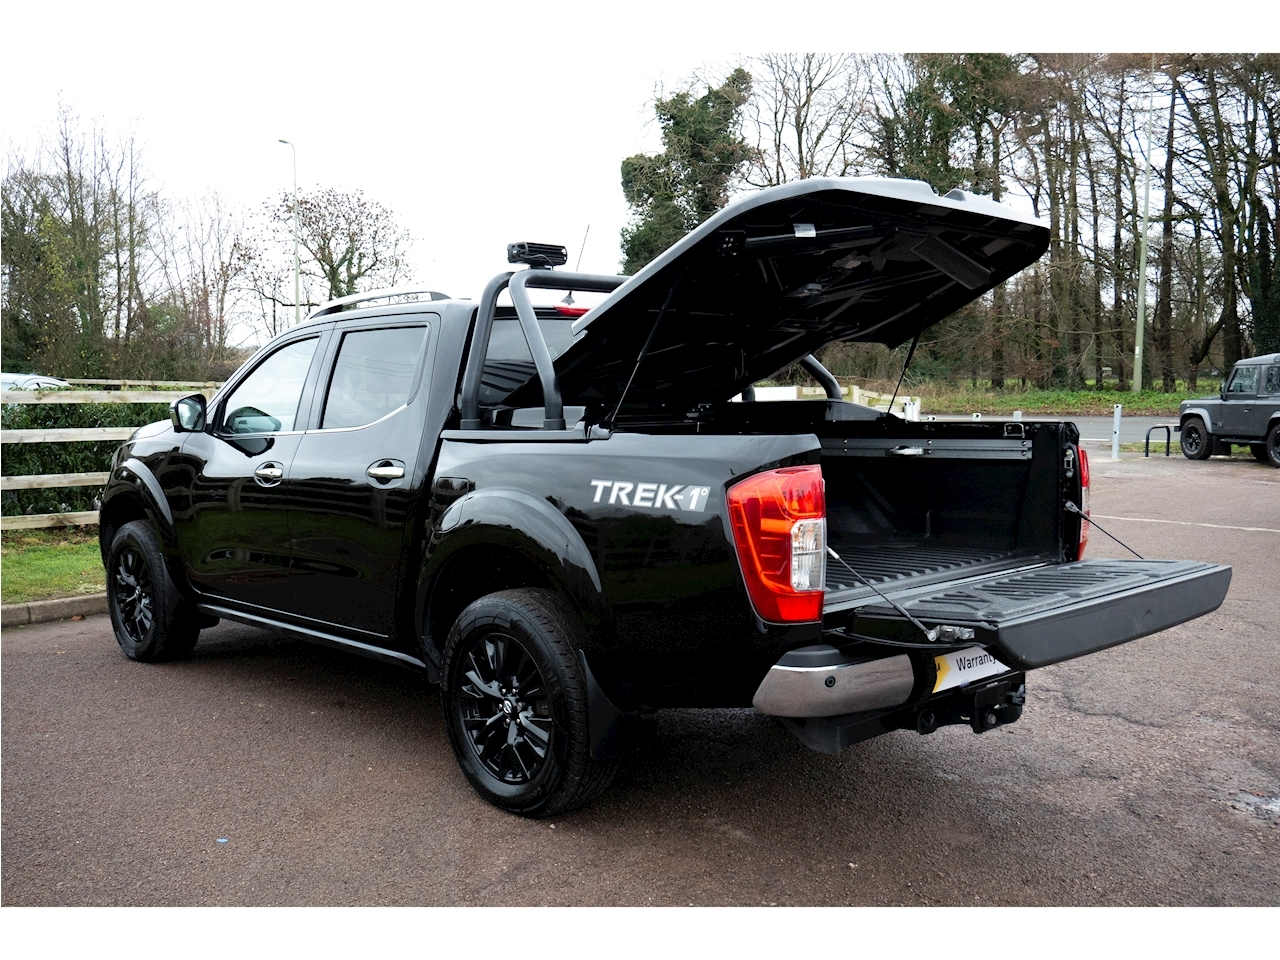 Nissan Navara Dci Trek Minus 1 4X4 Shr Dcb Pick-Up 2.3 Manual Diesel